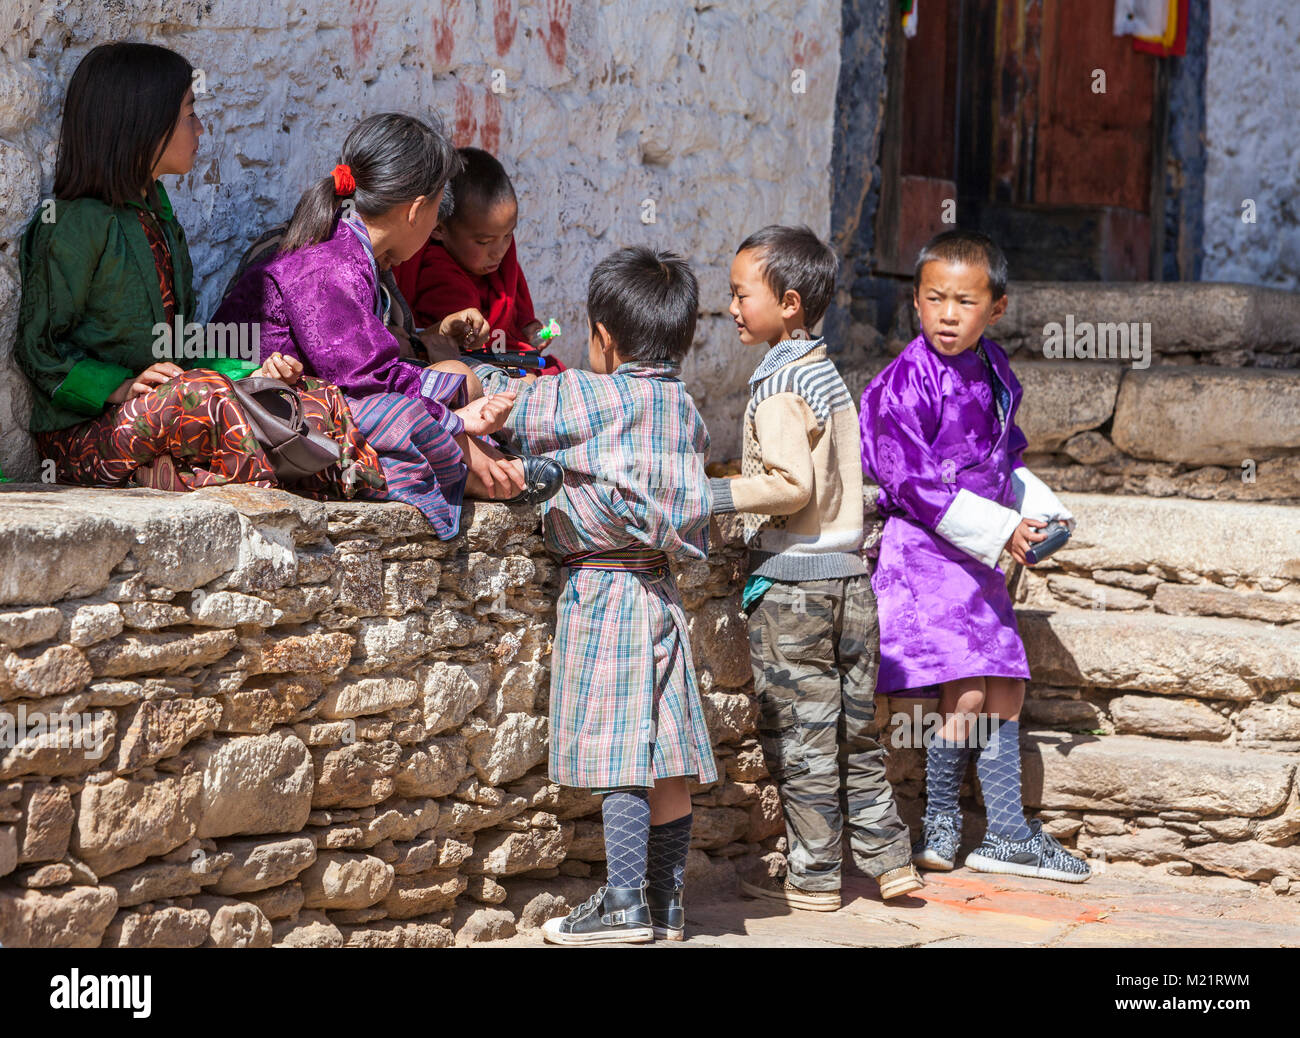 Prakhar Lhakhang, Bumthang, Bhutan.  Young Bhutanese Children, one in Western-style Clothes. - Stock Image